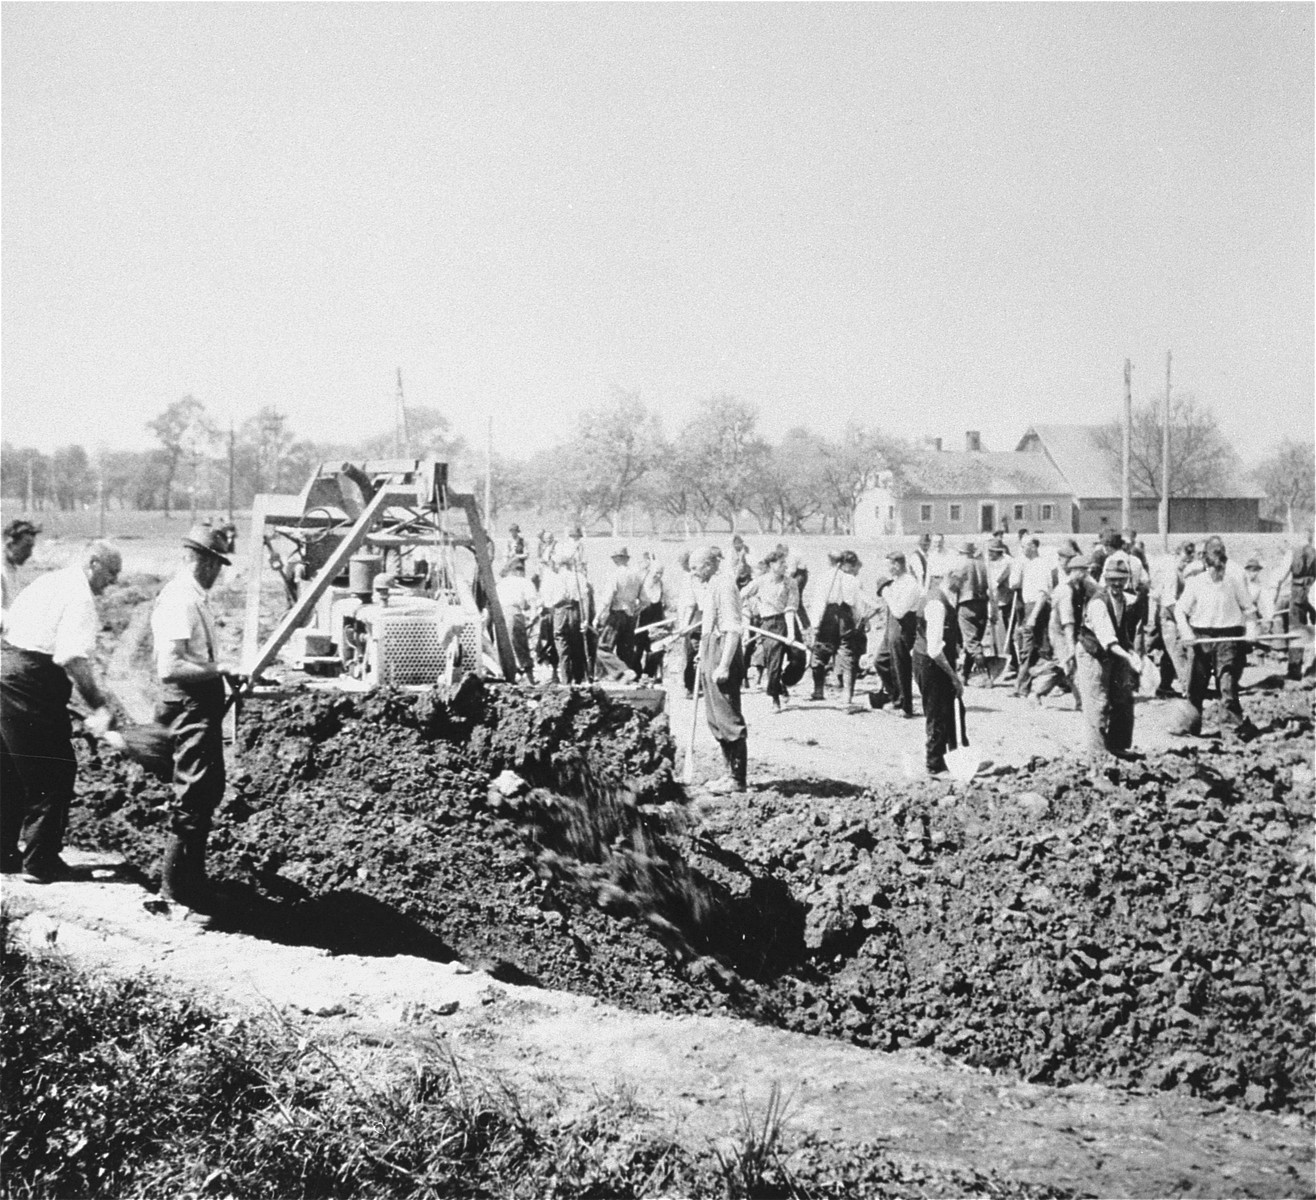 Austrian civilians prepare a mass grave to bury former inmates in the Gusen concentration camp, while a bulldozer levels the ground over an already filled grave.